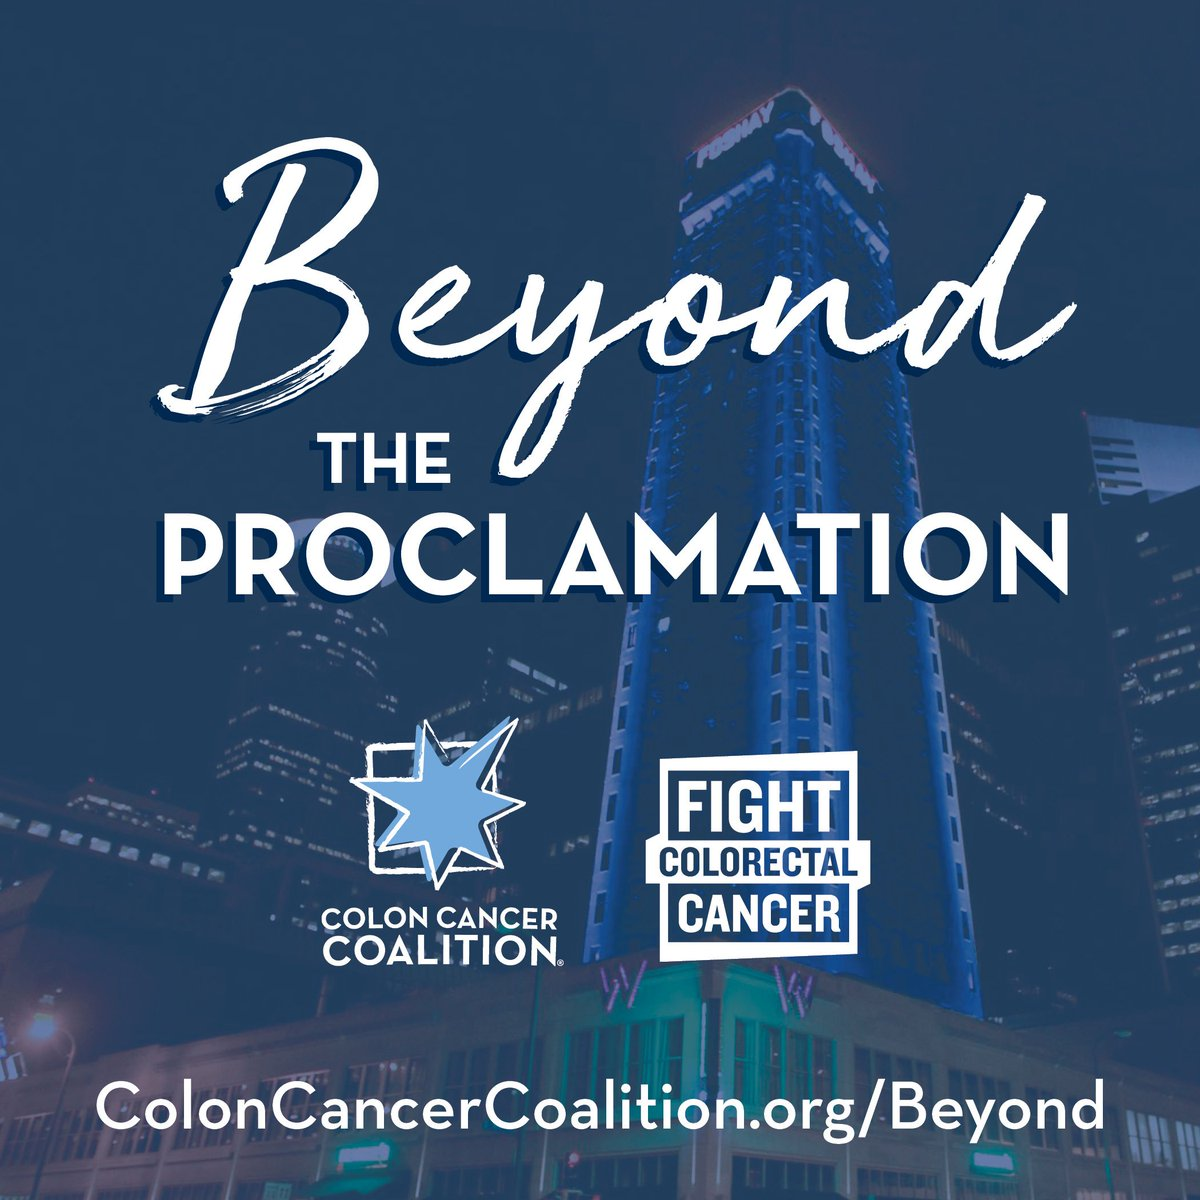 Colon Cancer Coalition On Twitter We Re Working With Our Advocacy Partner Fightcrc To Go Beyond The Proclamation Many Advocates Get March Proclaimed As Colorectalcancer Awareness Month But What Can You Do Beyond